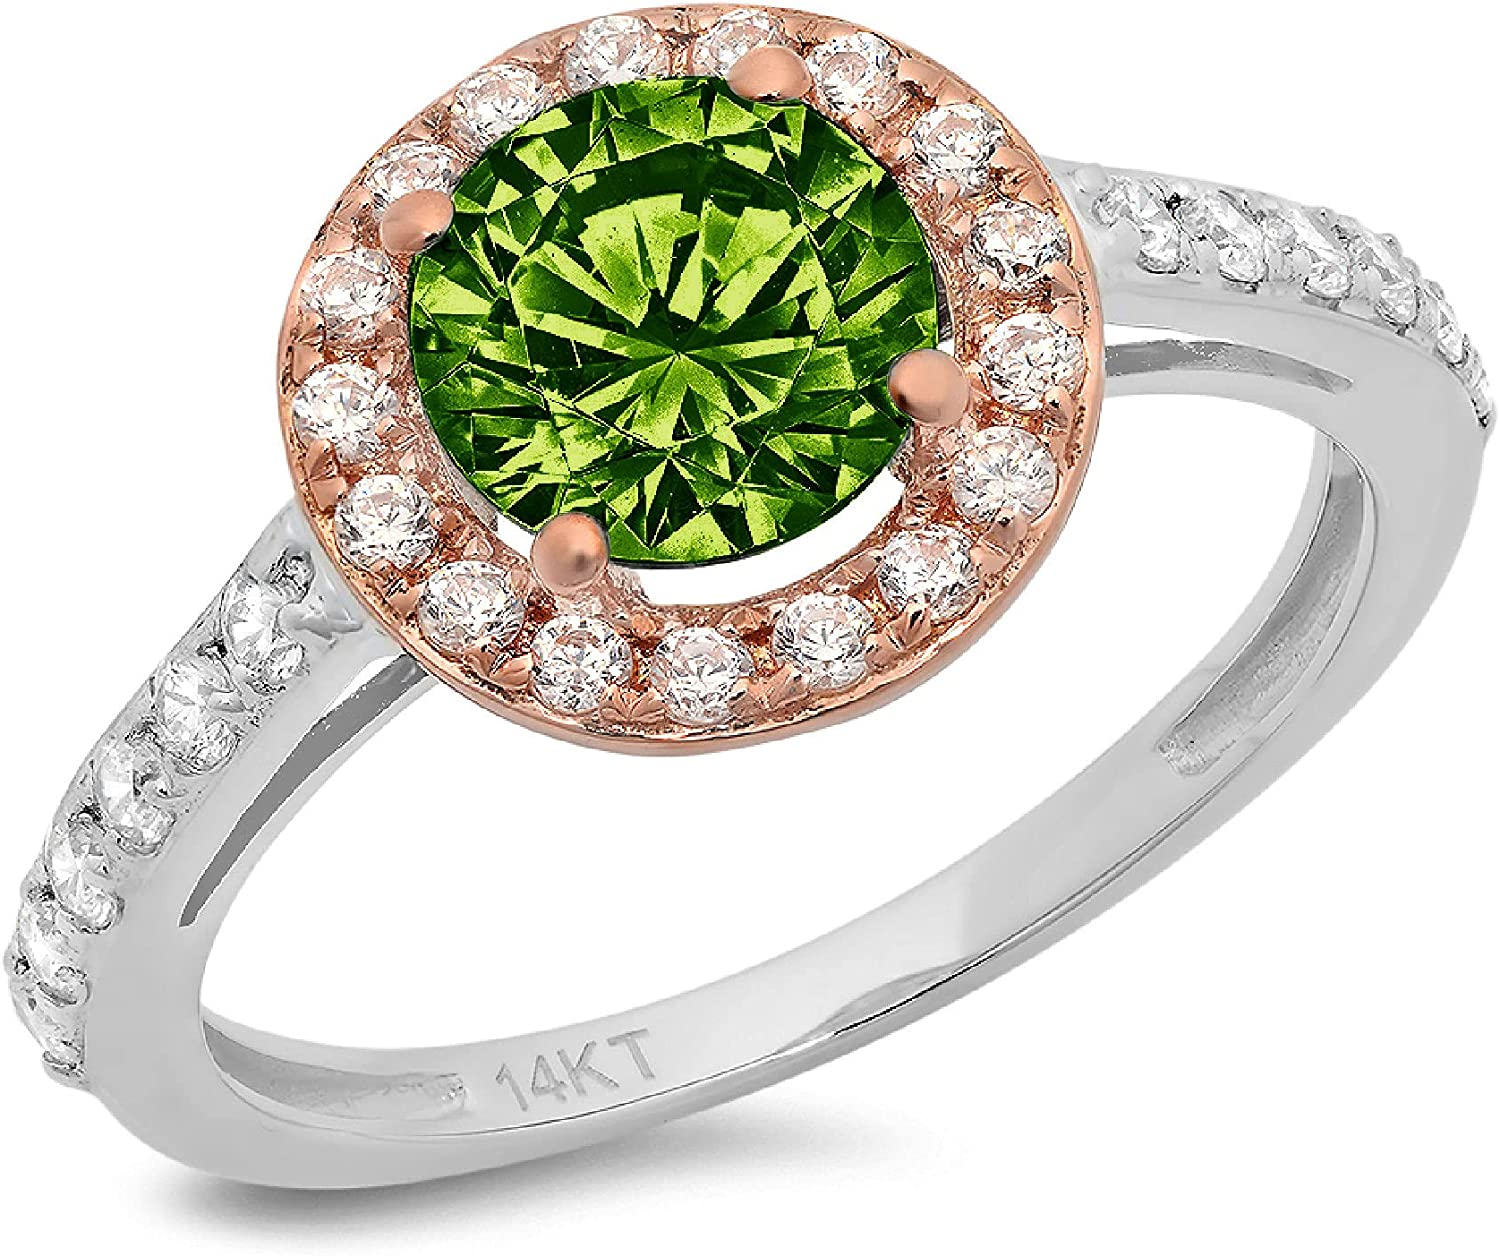 2.34ct Round Cut Solitaire Halo Genuine Natural Vivid Green Peridot Gemstone Ideal VVS1 Engagement Promise Statement Anniversary Bridal Wedding Accent ring Solid 14k White & Pink Rose Gold